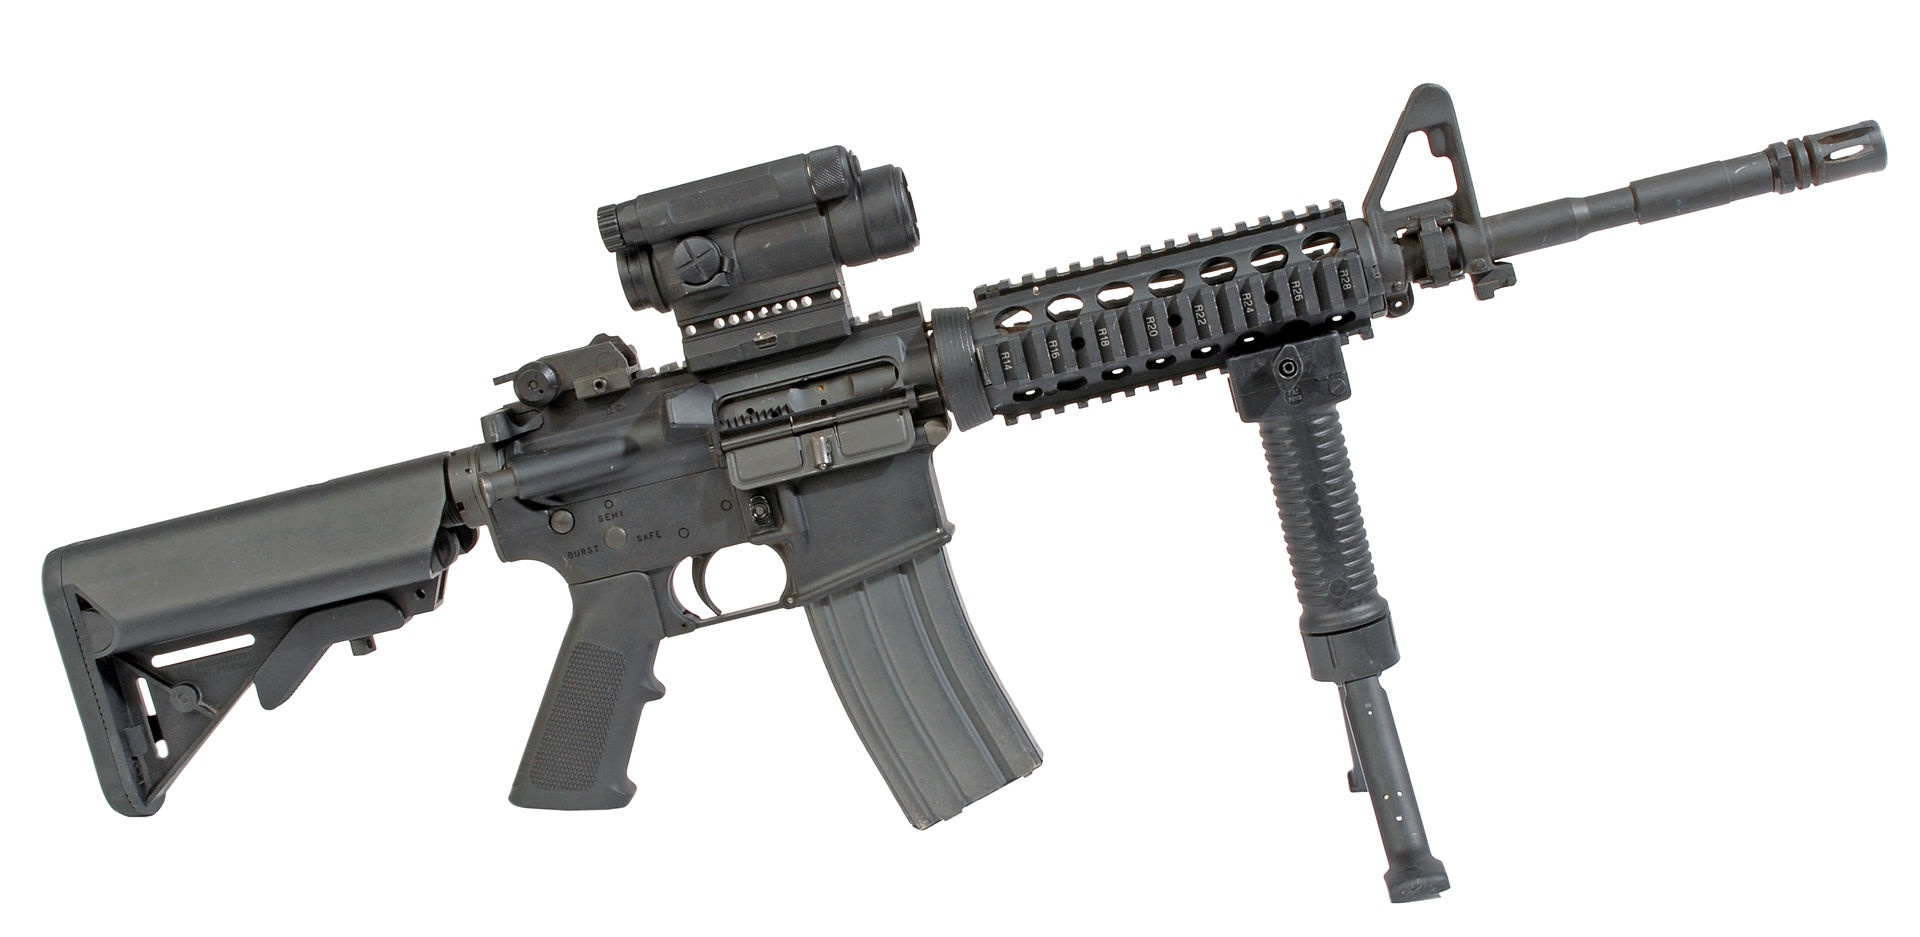 What gun does US military use? M16, M4, or AR-15? - Quora